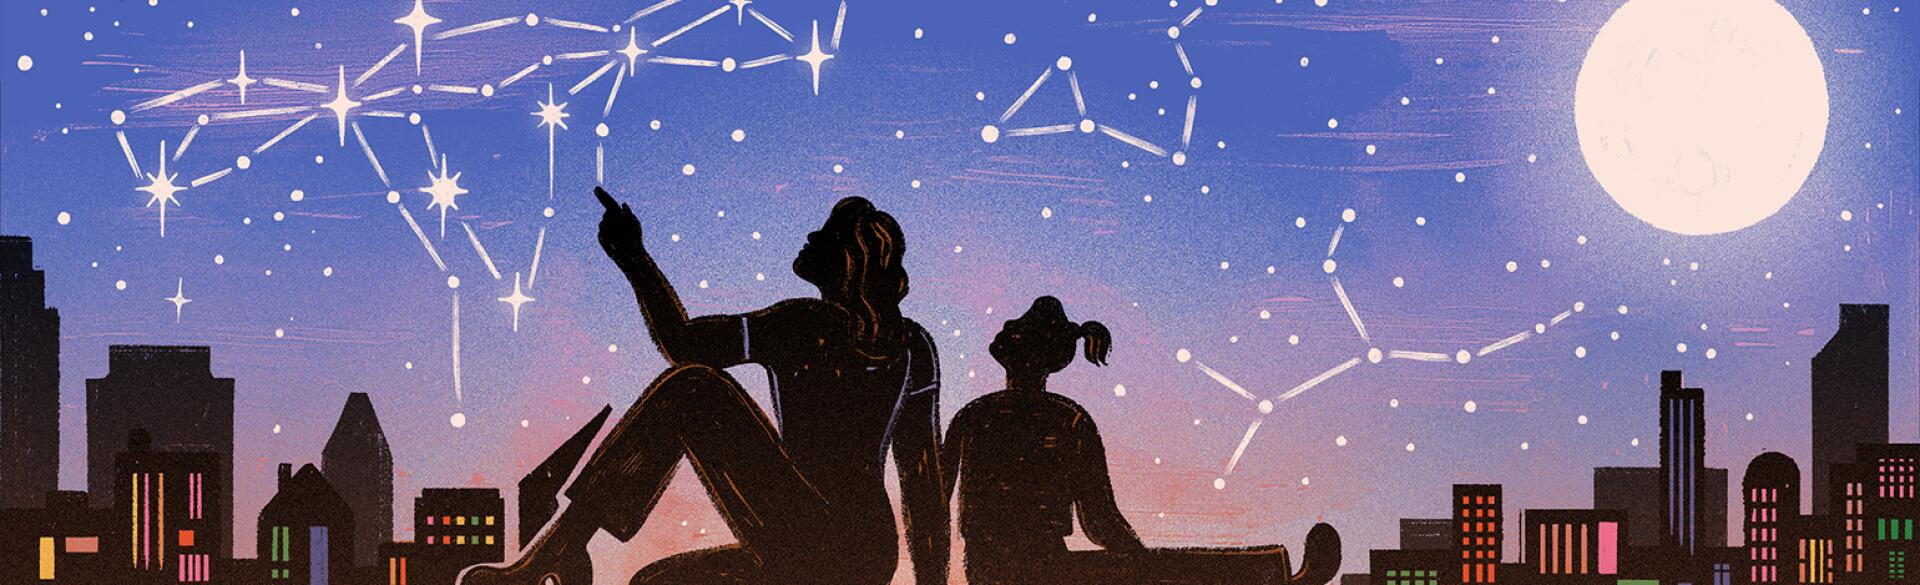 illustration of mother and daughter looking at uterus constellation at night